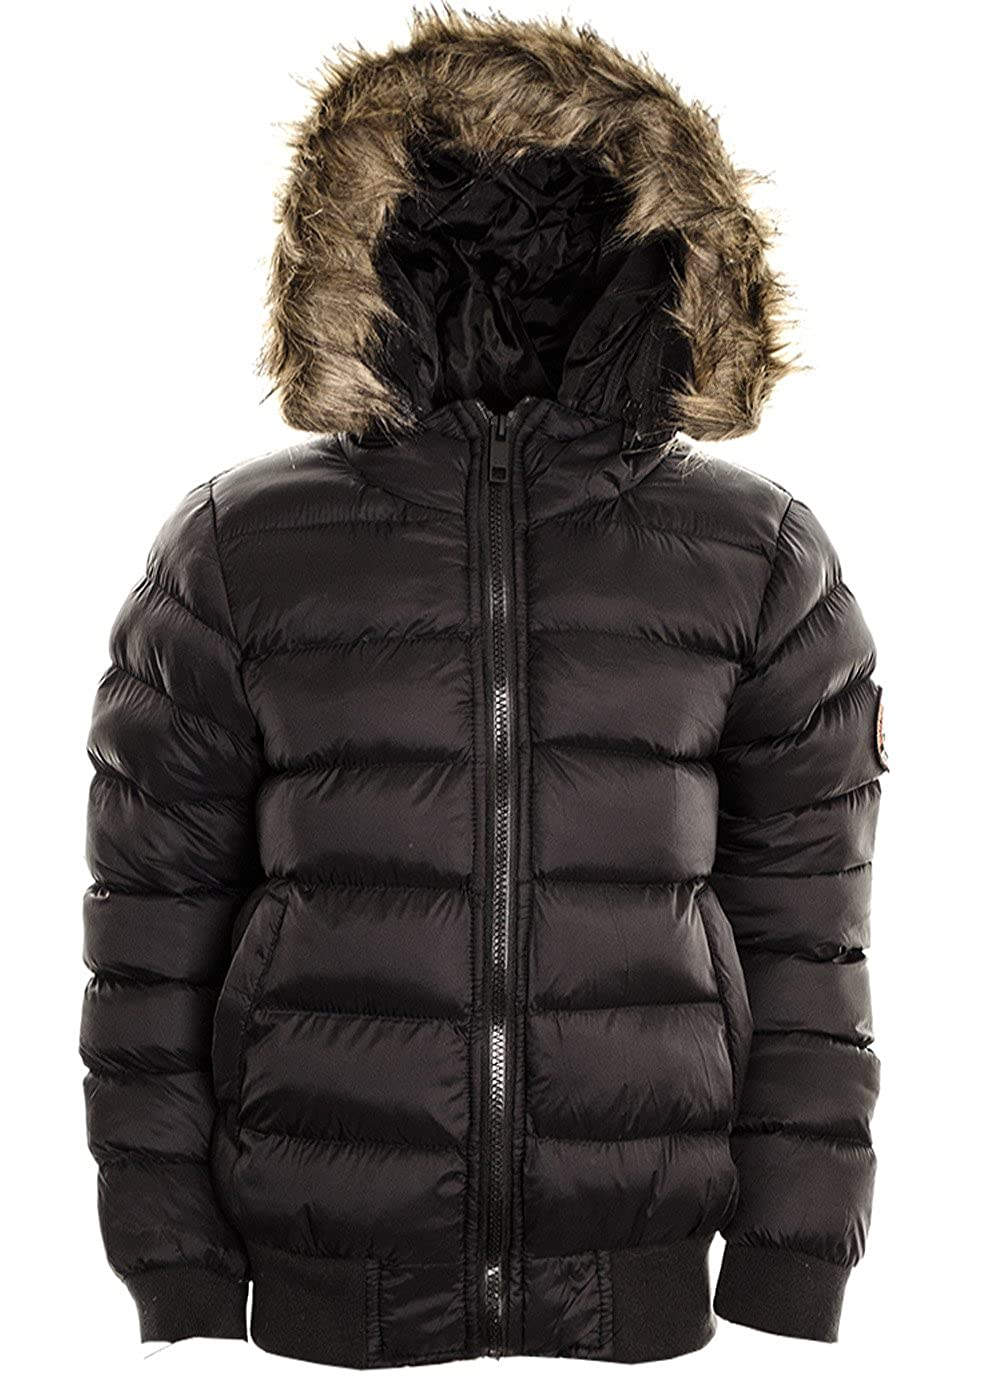 Fuchia boutique Boy's Puffer Jacket Coat Faux Fur Hooded Bommer Padded Quilted Winter Jacket.